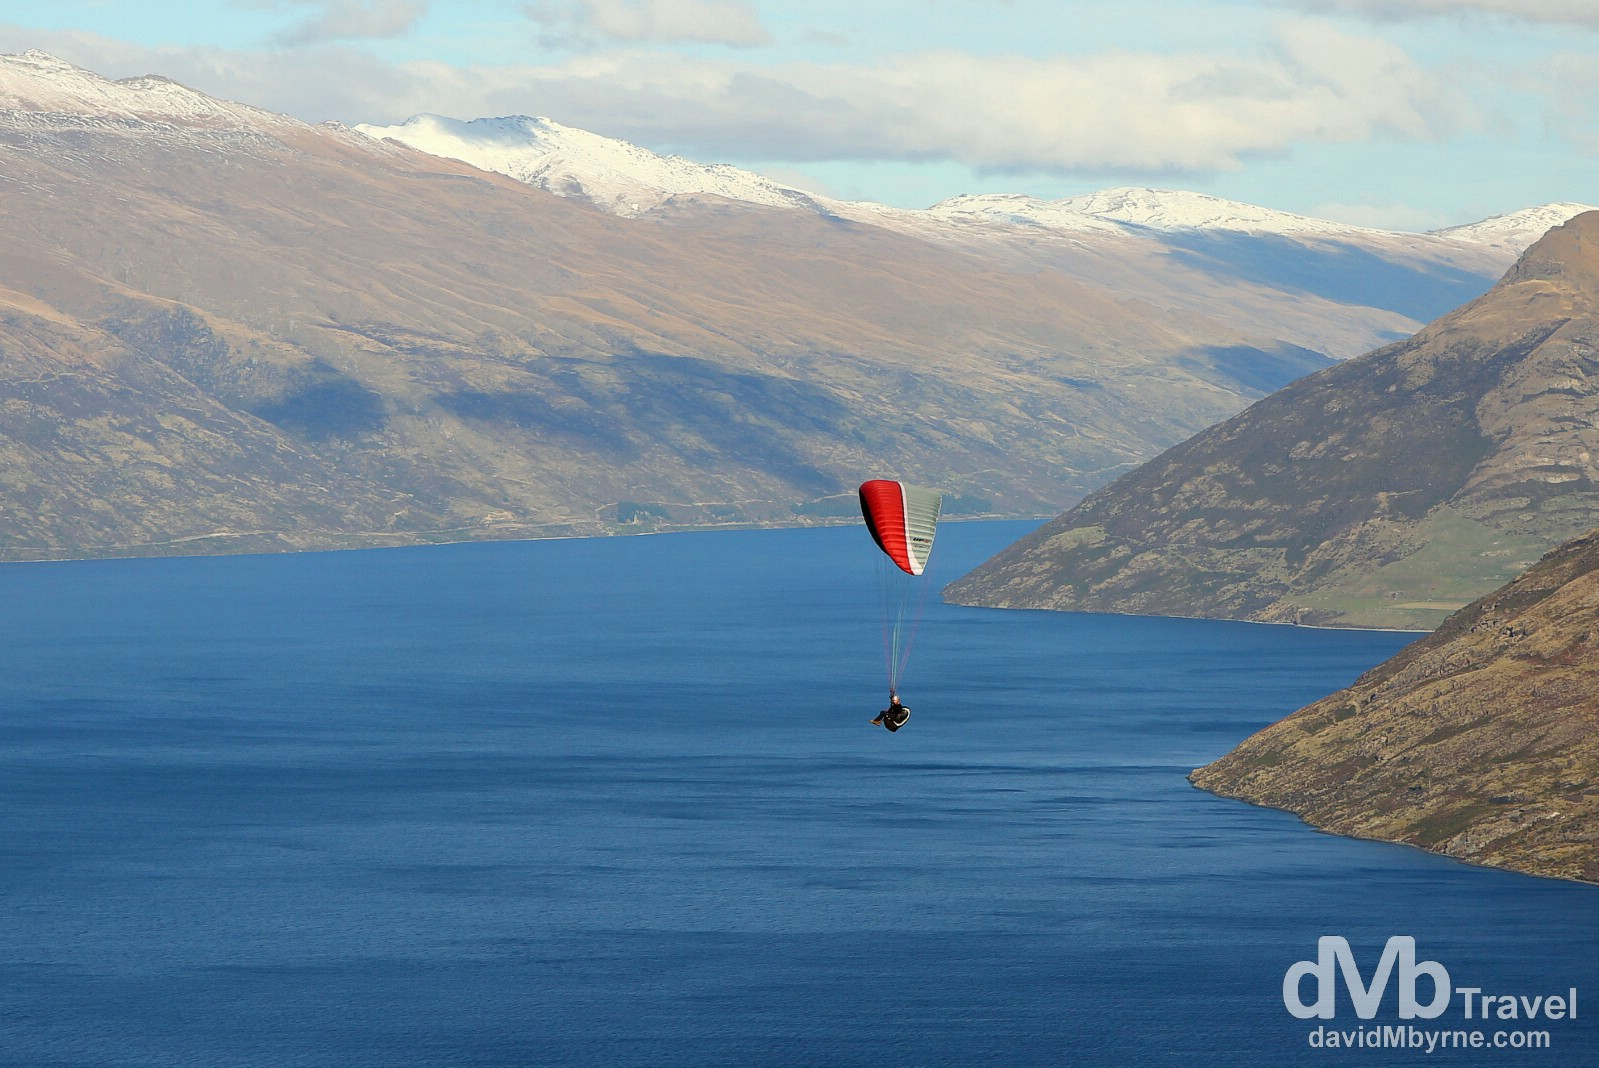 Paragliding over Lake Wakatipu, Queenstown, South Island, New Zealand. May 23rd 2012.